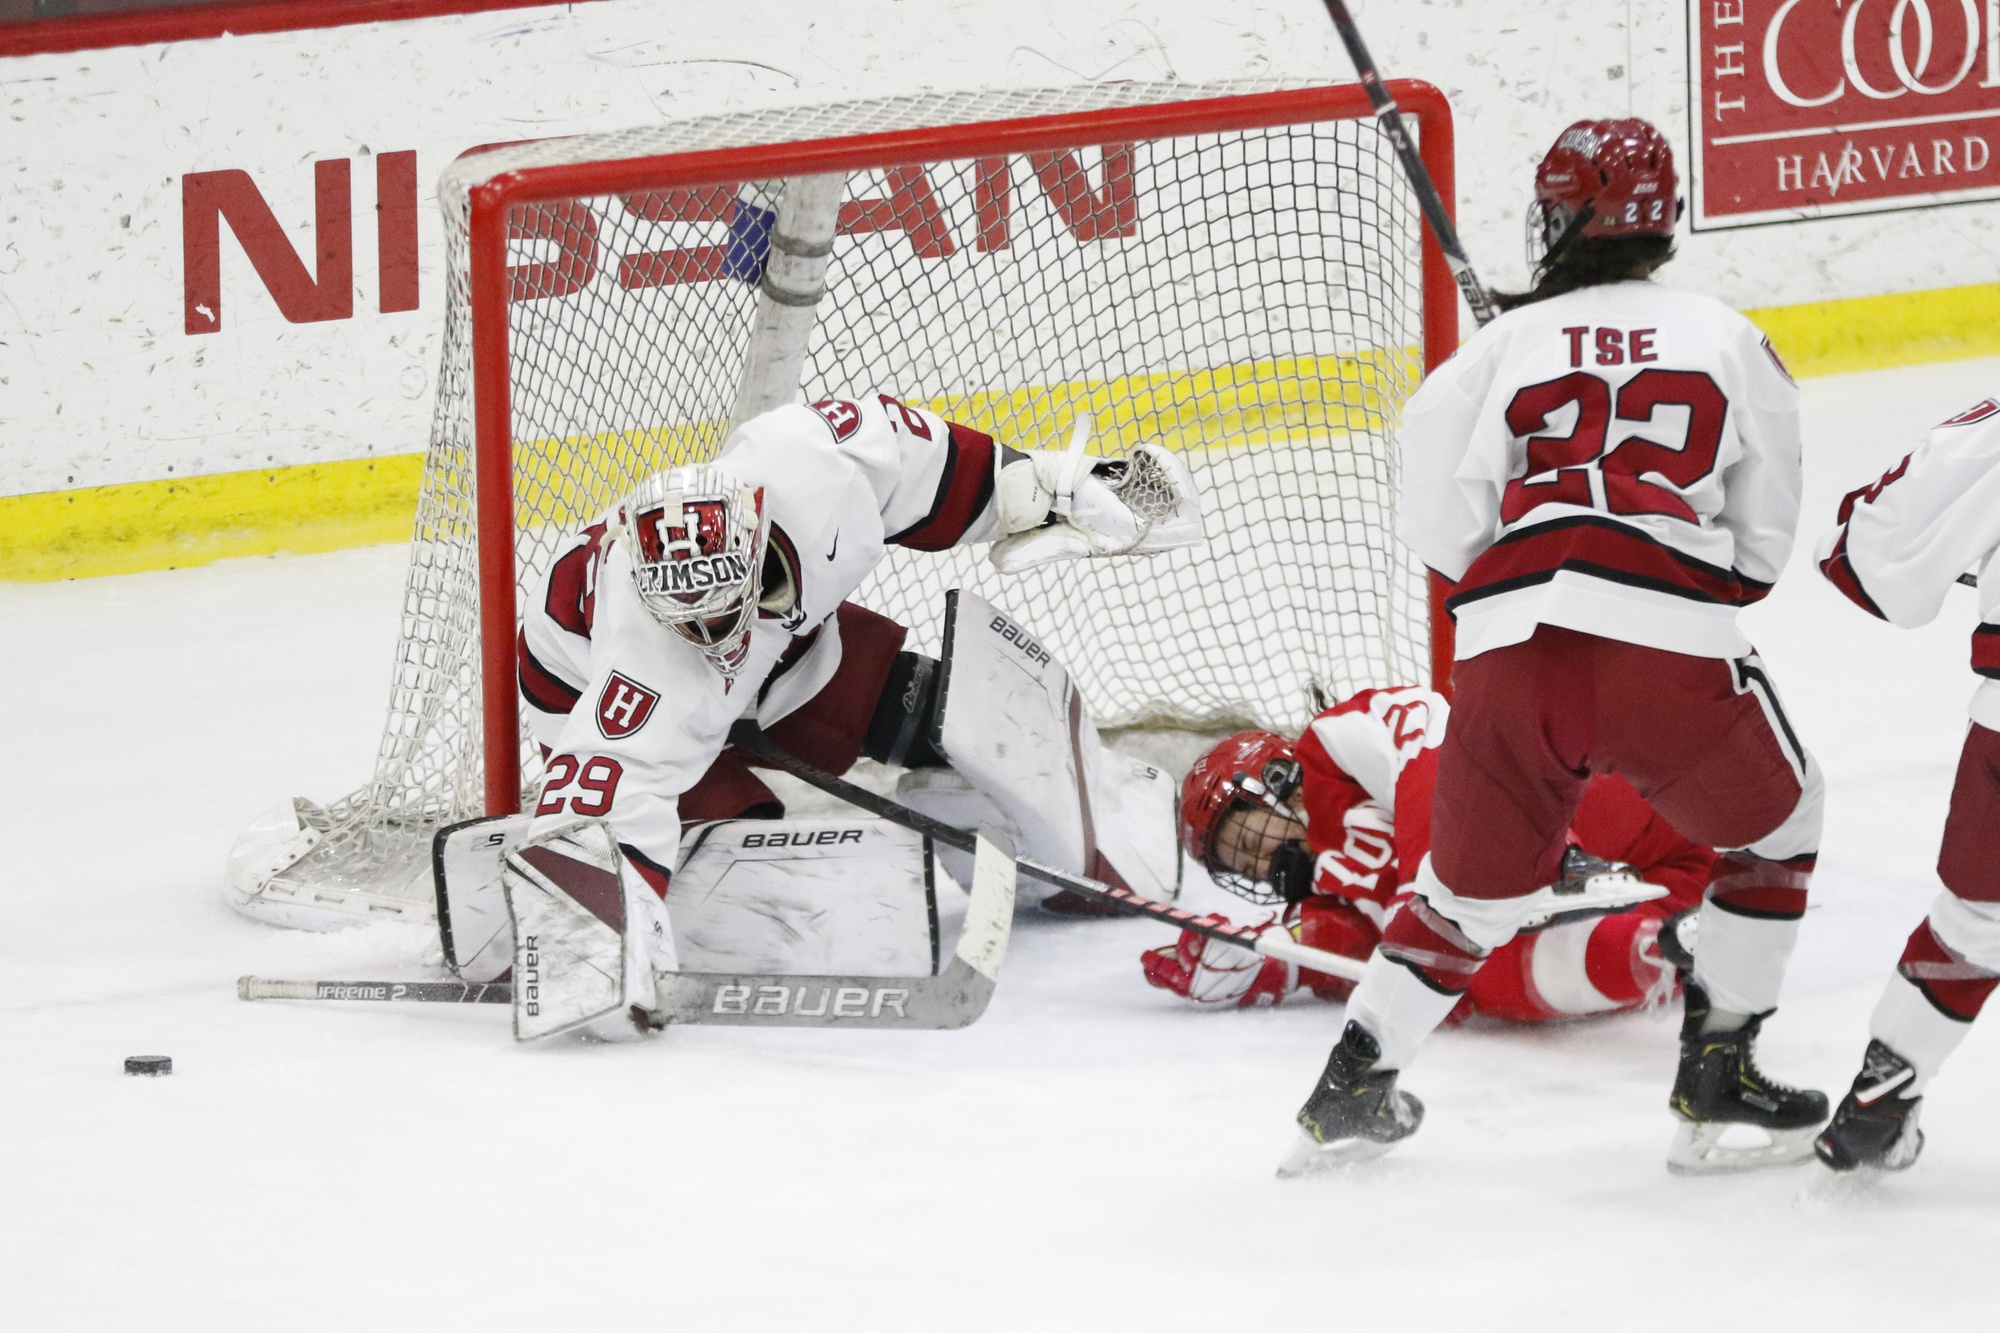 In 2015, the Crimson knocked off then-No.1 BC to capture the Beanpot. It was the first for Harvard since 2010.